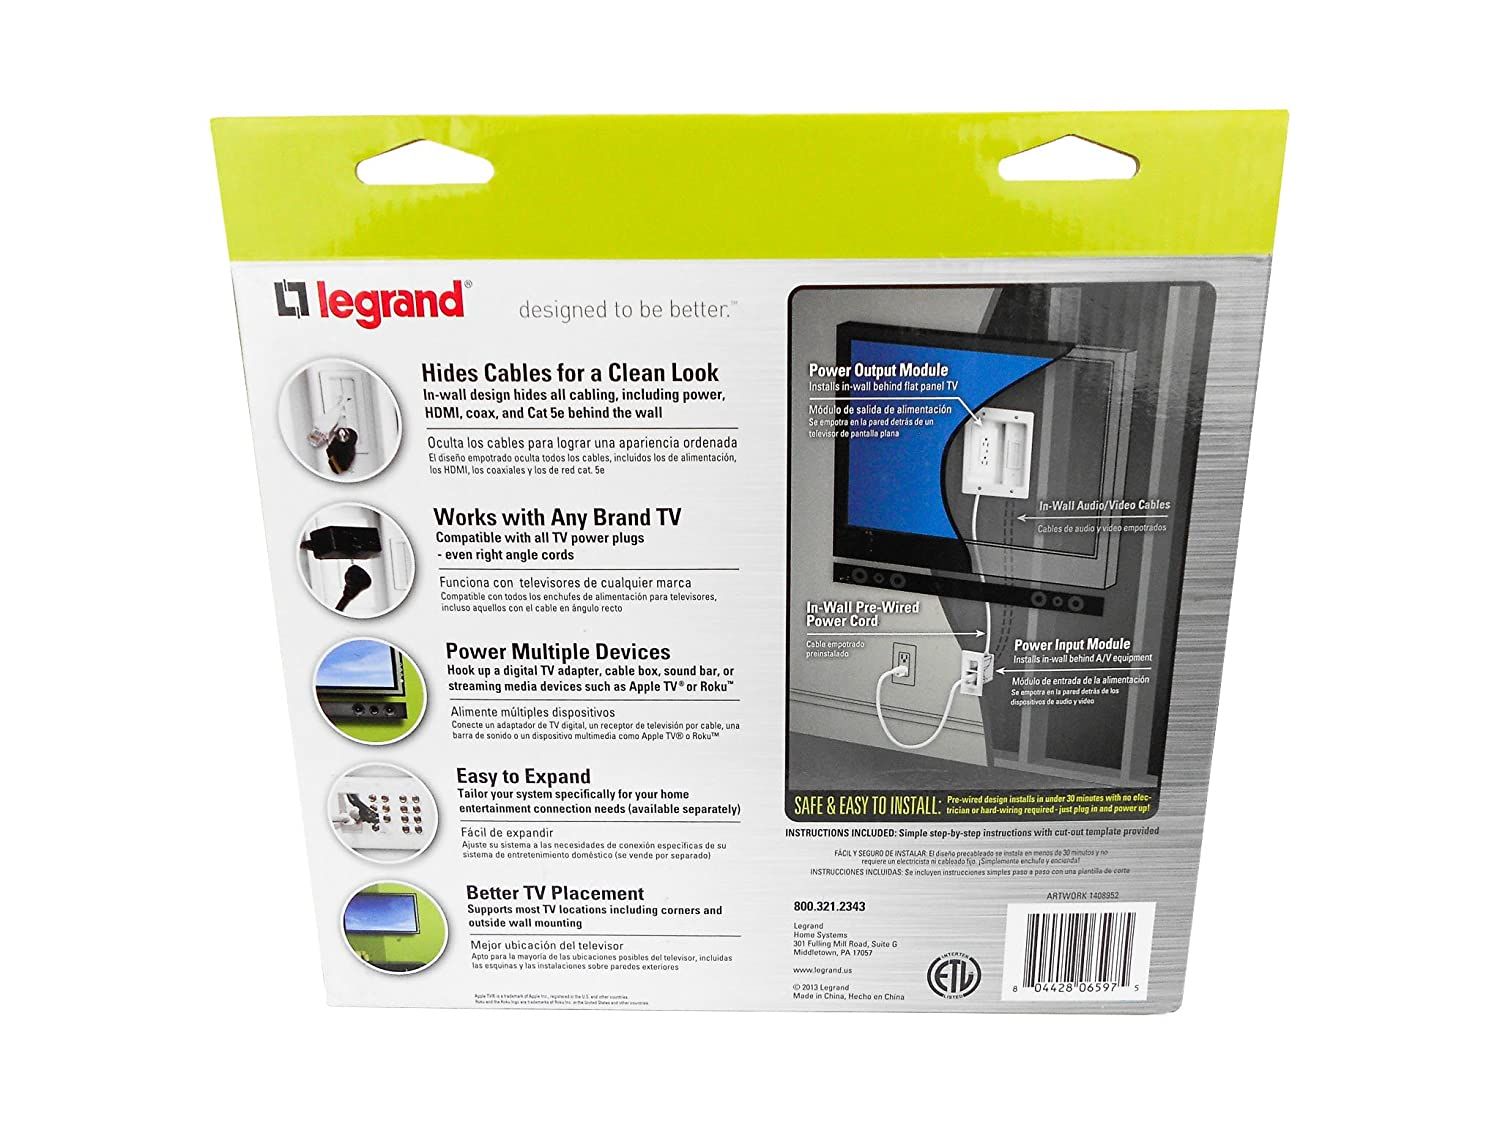 Buy Legrand Ht2202whv1 Wm Inwall Tv Power Kit Online At Low Prices  # Designe De Support De Television